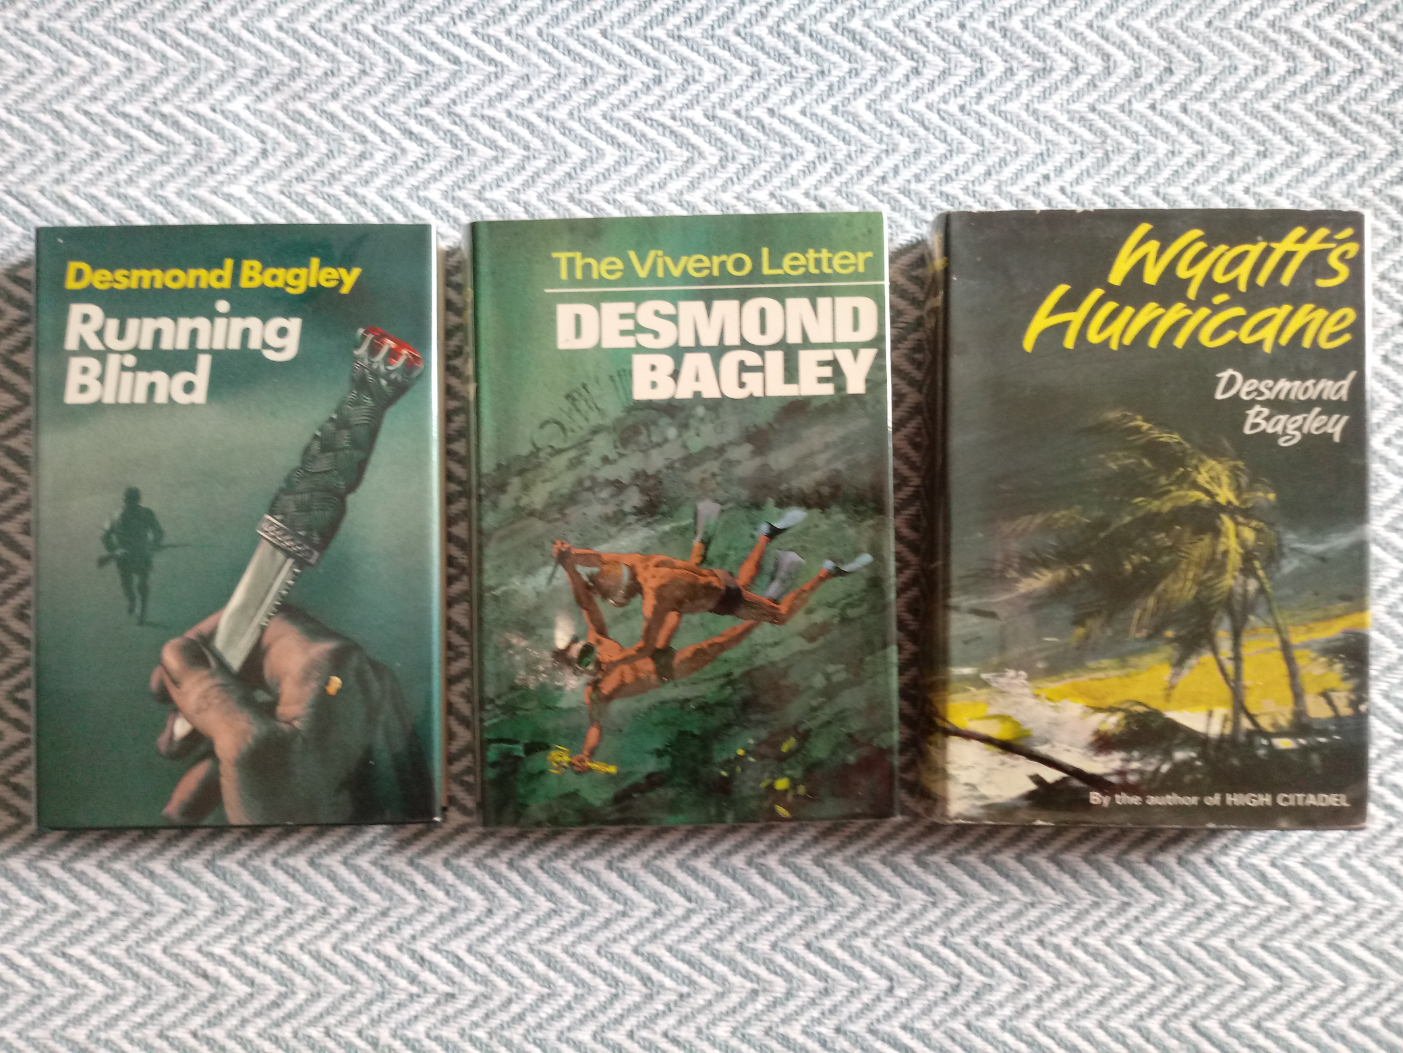 3 x Desmond Bagley hardback books published by Collins 1- Wyatt's Hurricane 287 pages 1966. In